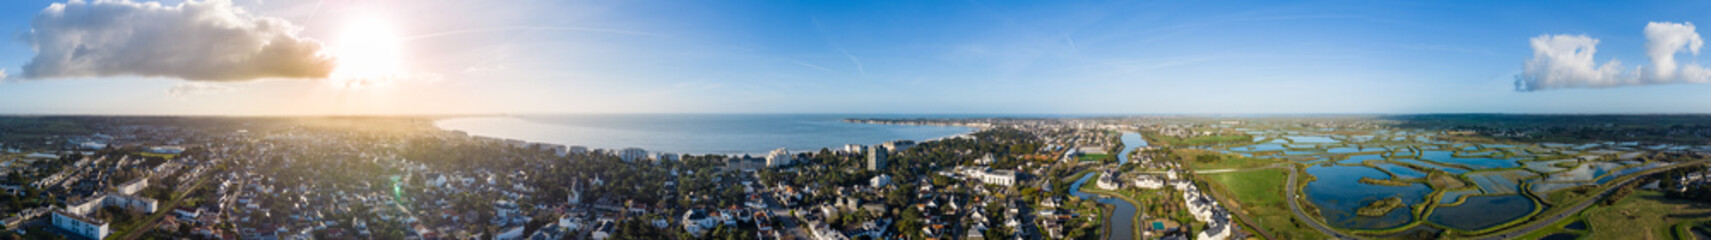 Drone panorama of La Baule Escoublac with seaside, beach and salt marshes.